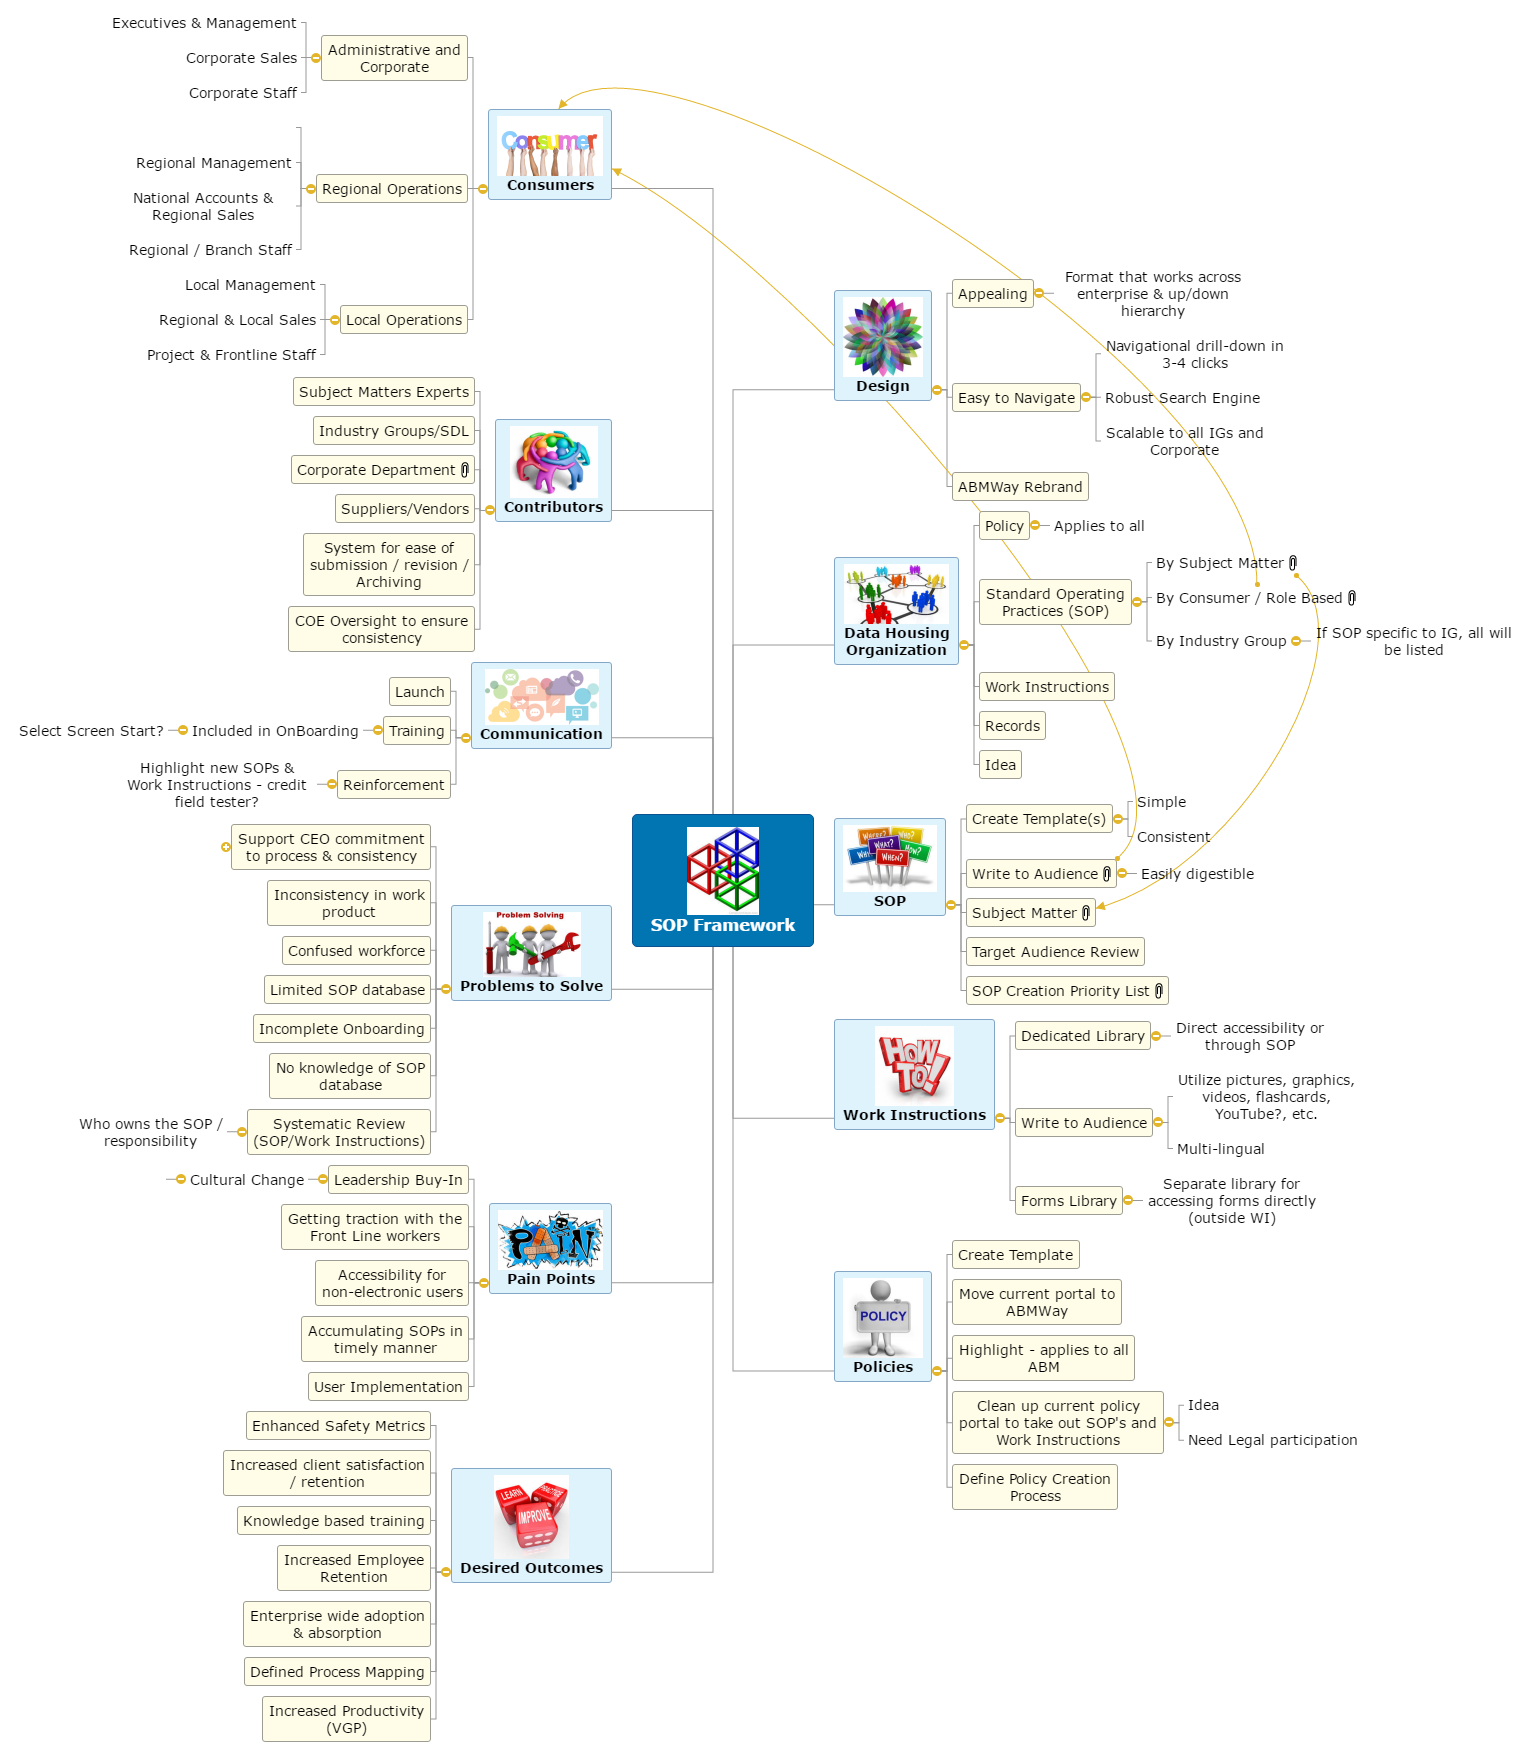 SOP Framework Mind Map